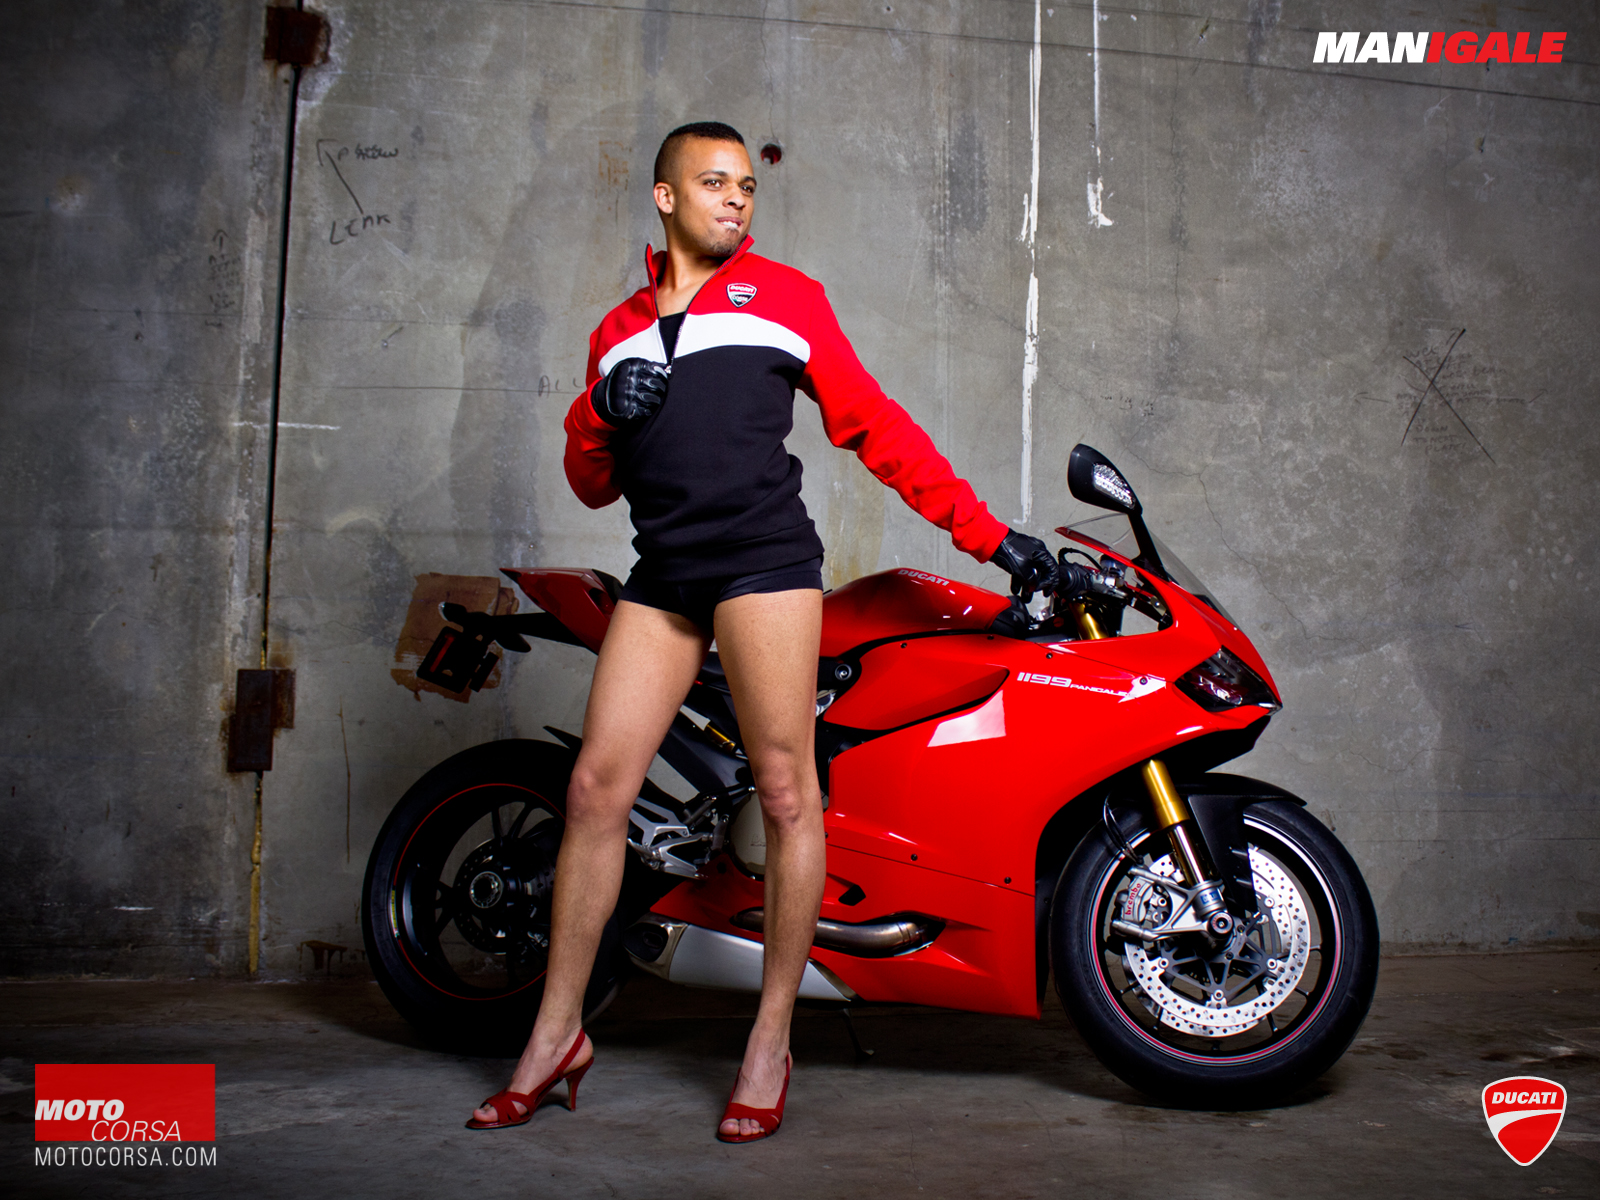 manigale-ducati-1199-wallpaper-17-1600x1200